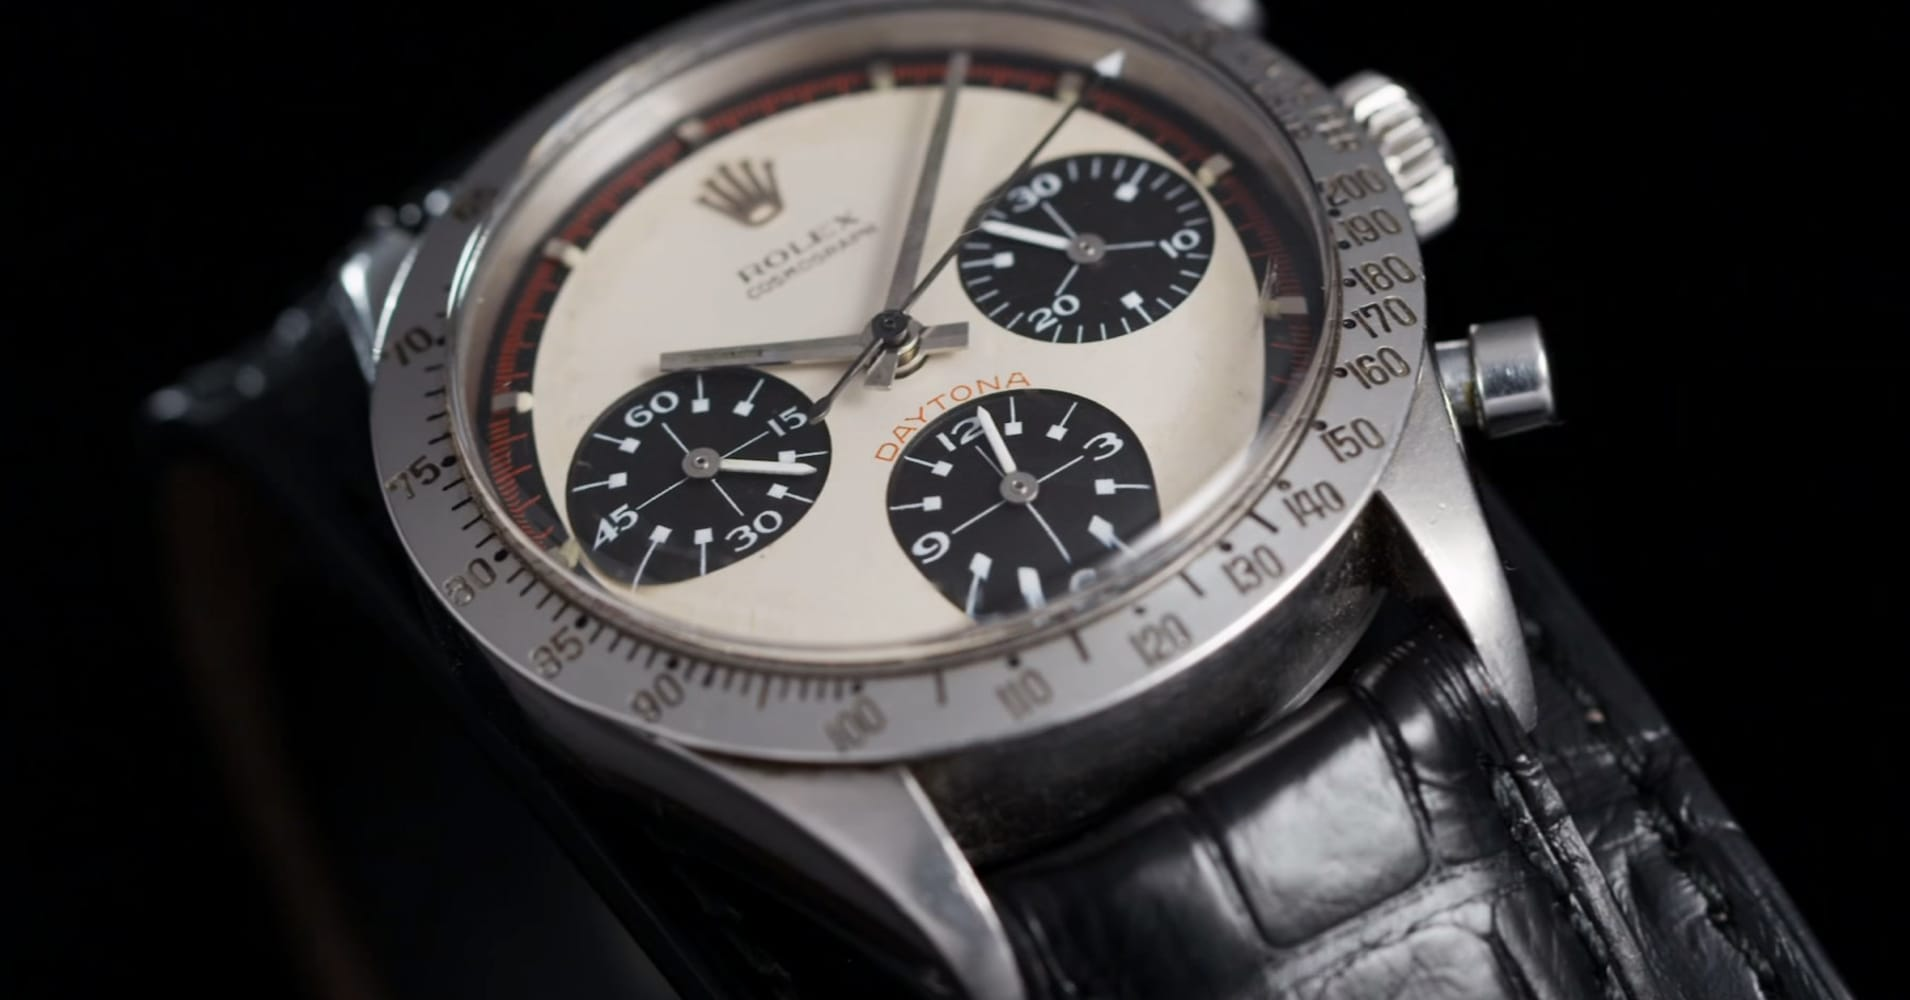 Paul Newman's Daytona Rolex is most expensive ever sold at auction